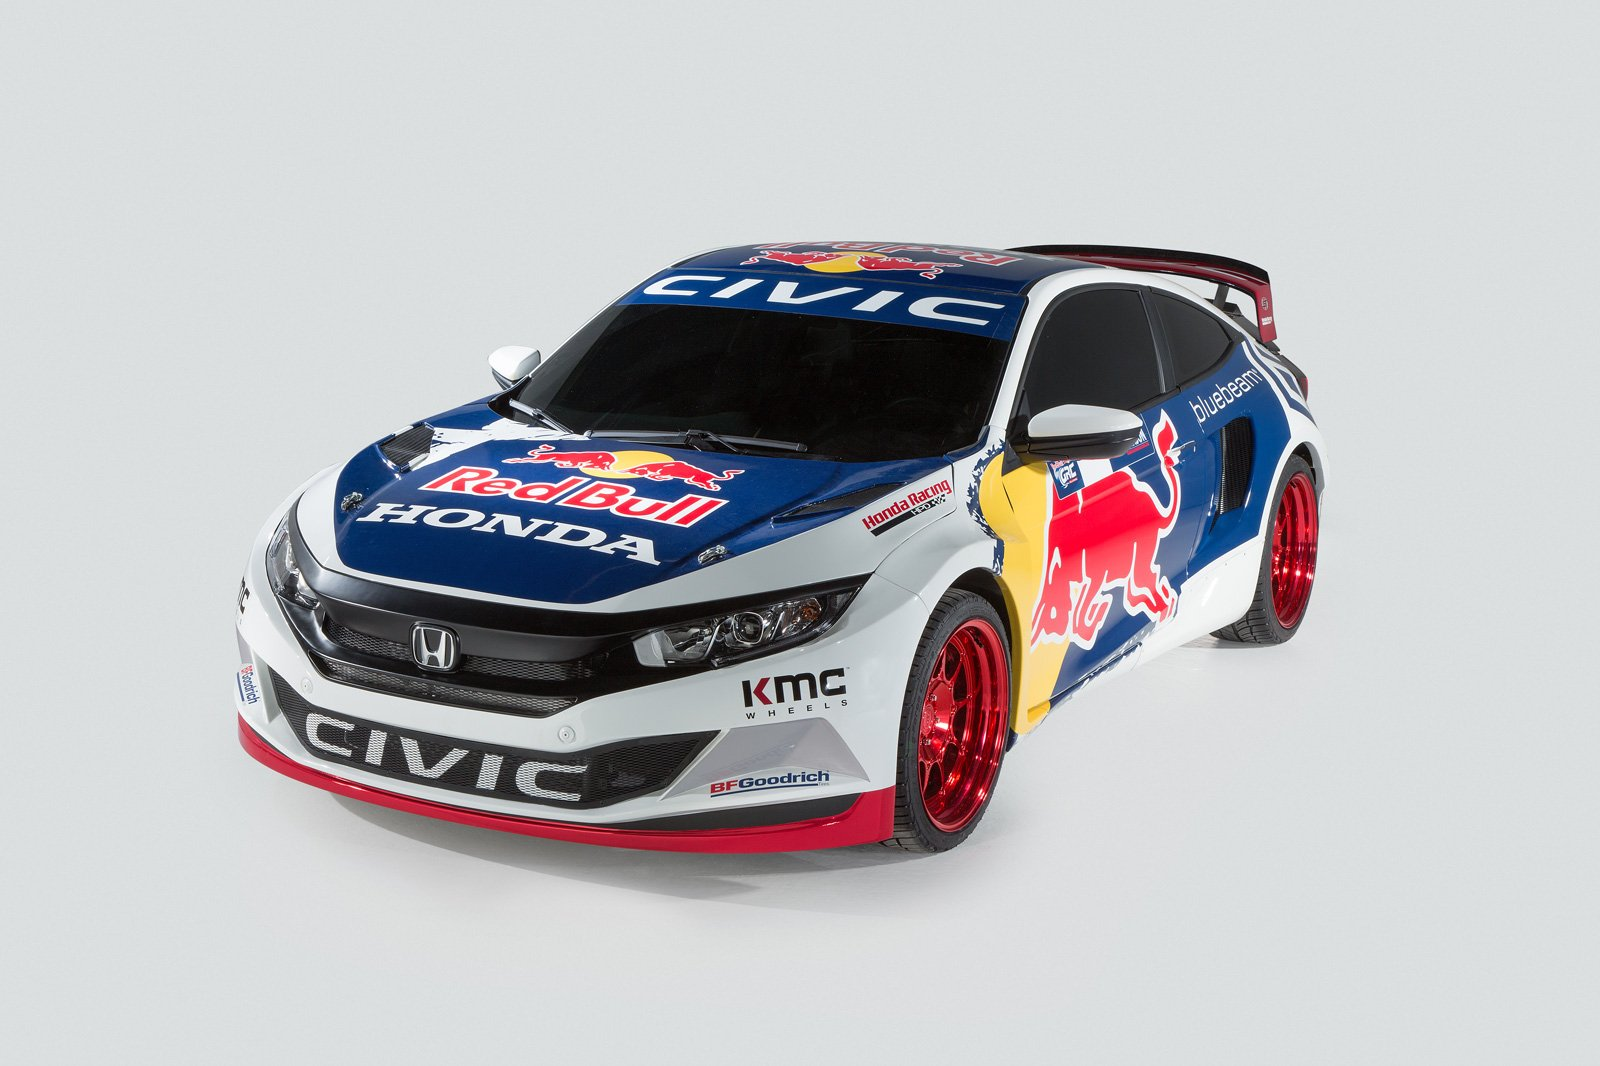 2016 Honda Civic Coupe Set To Compete In Global Rallycross